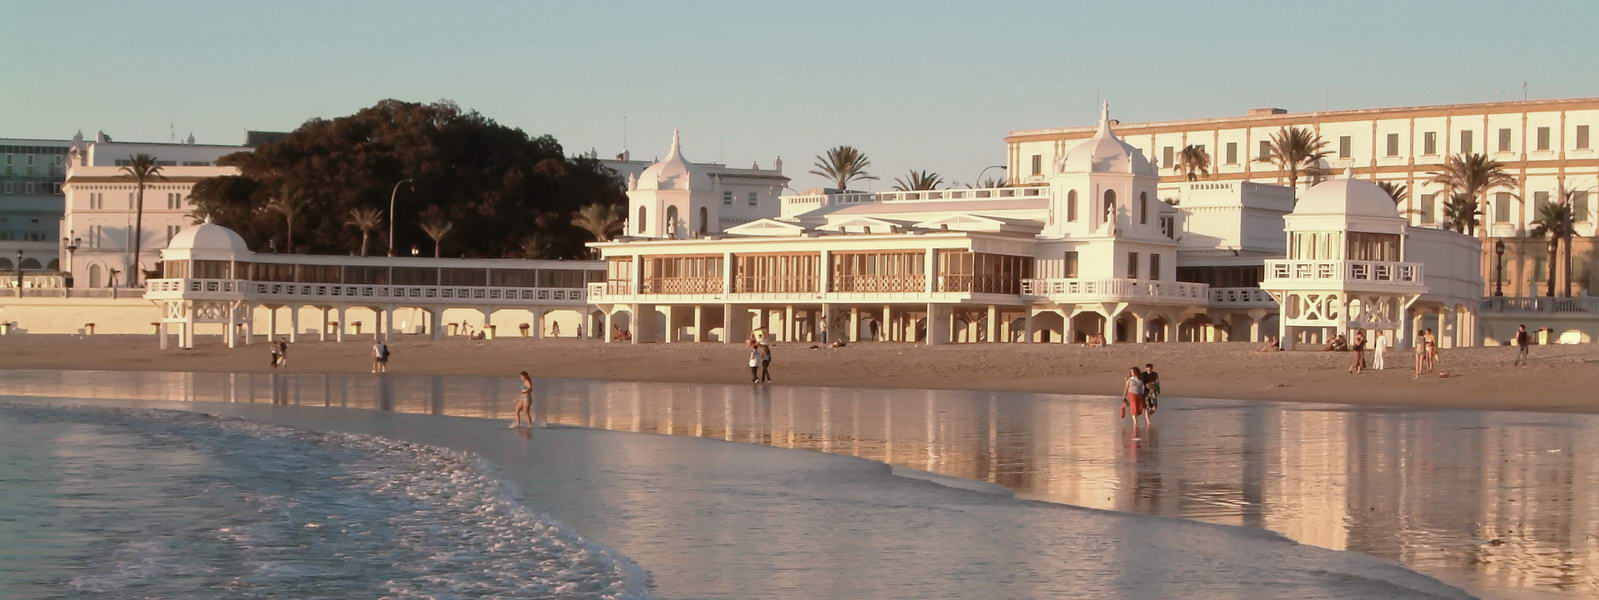 cadiz-hottest-place-in-spain1